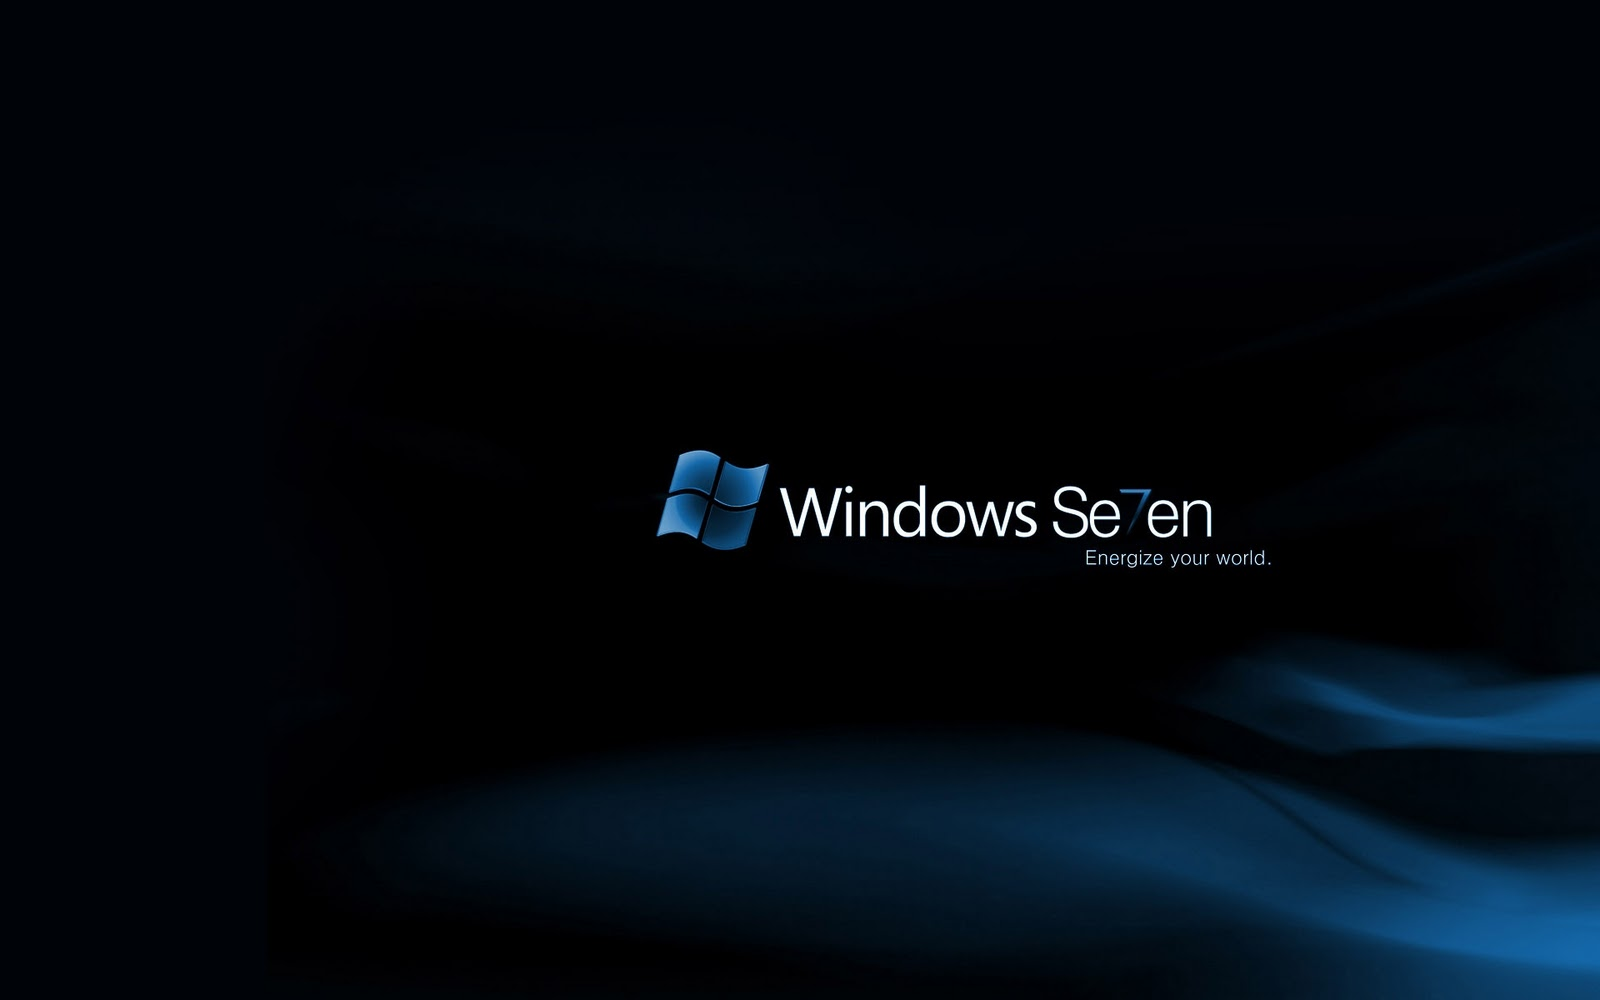 windows 7 wallpapers ~ hd desktop wallpapers